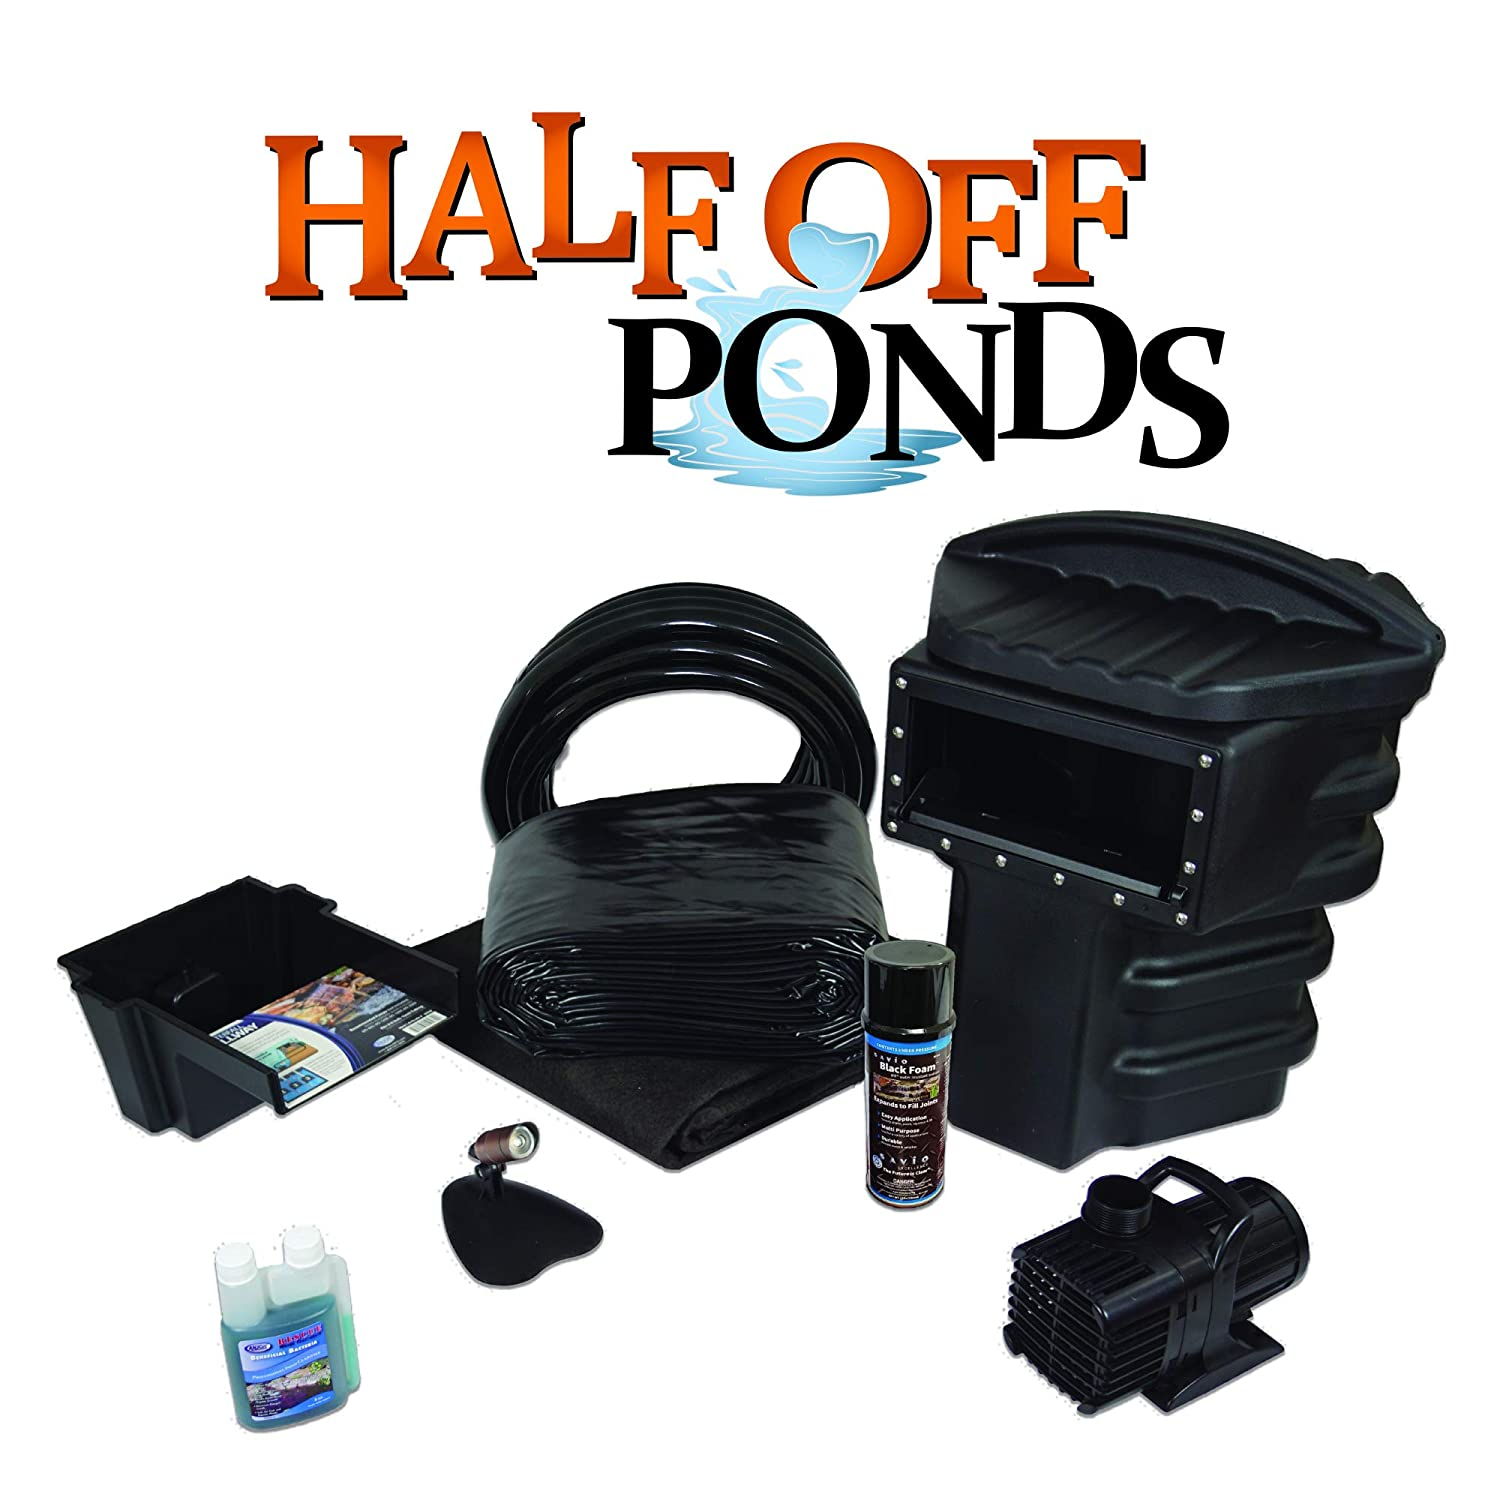 Simply Ponds 1200 Water Garden and Pond Kit with 10 Foot x 10 Foot PVC Liner